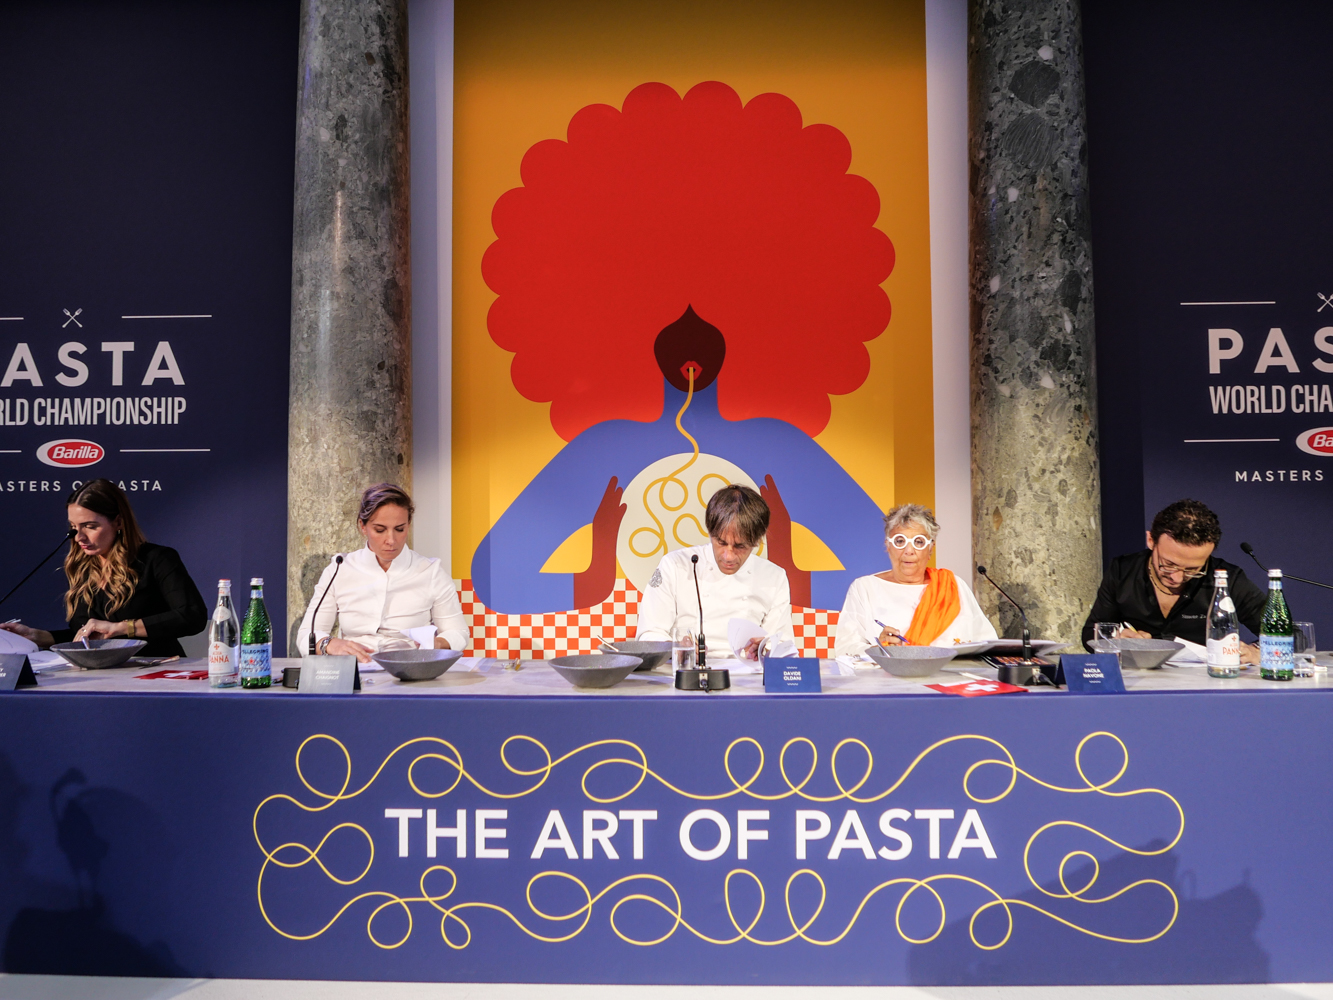 Paris Barilla World Championship